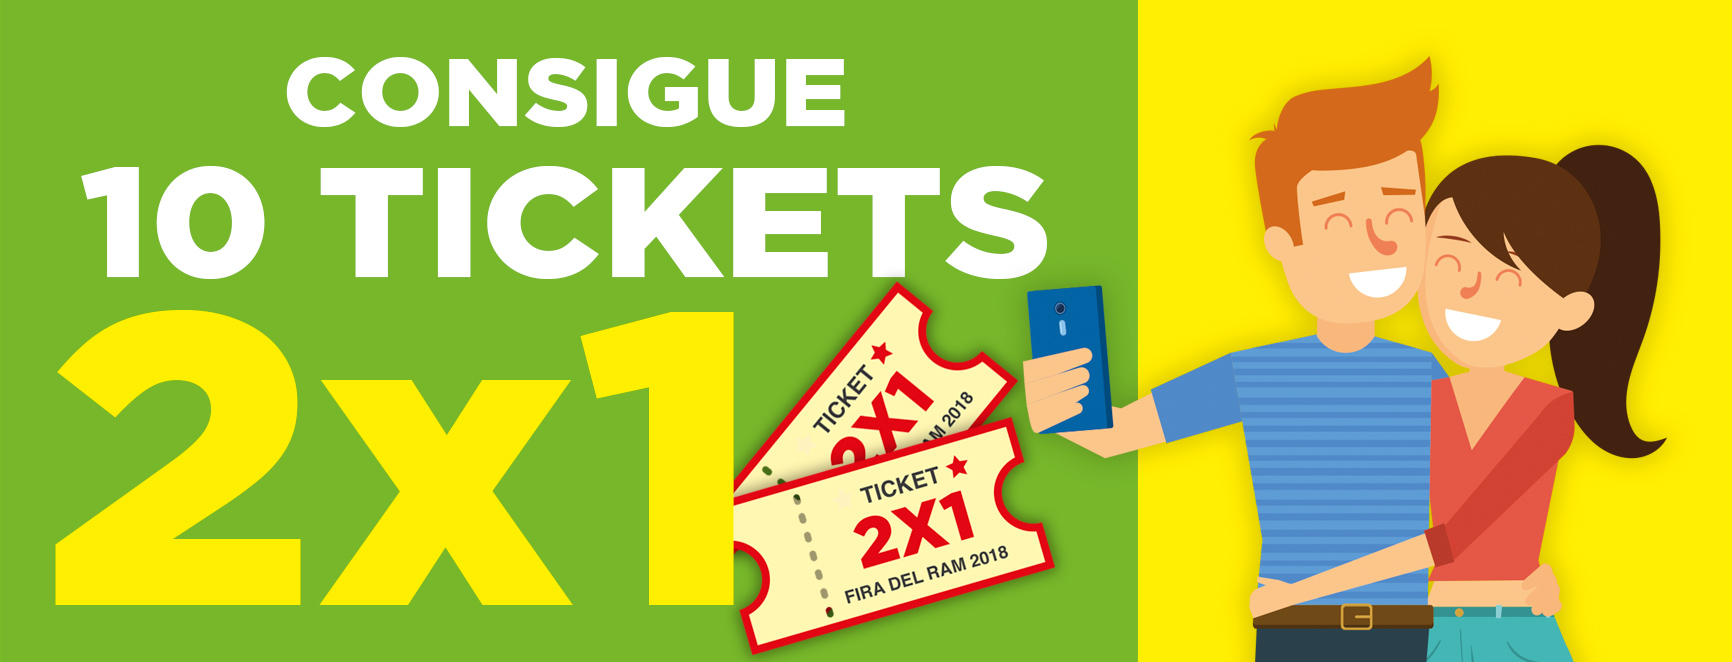 Consigue 10 Tickets 2X1